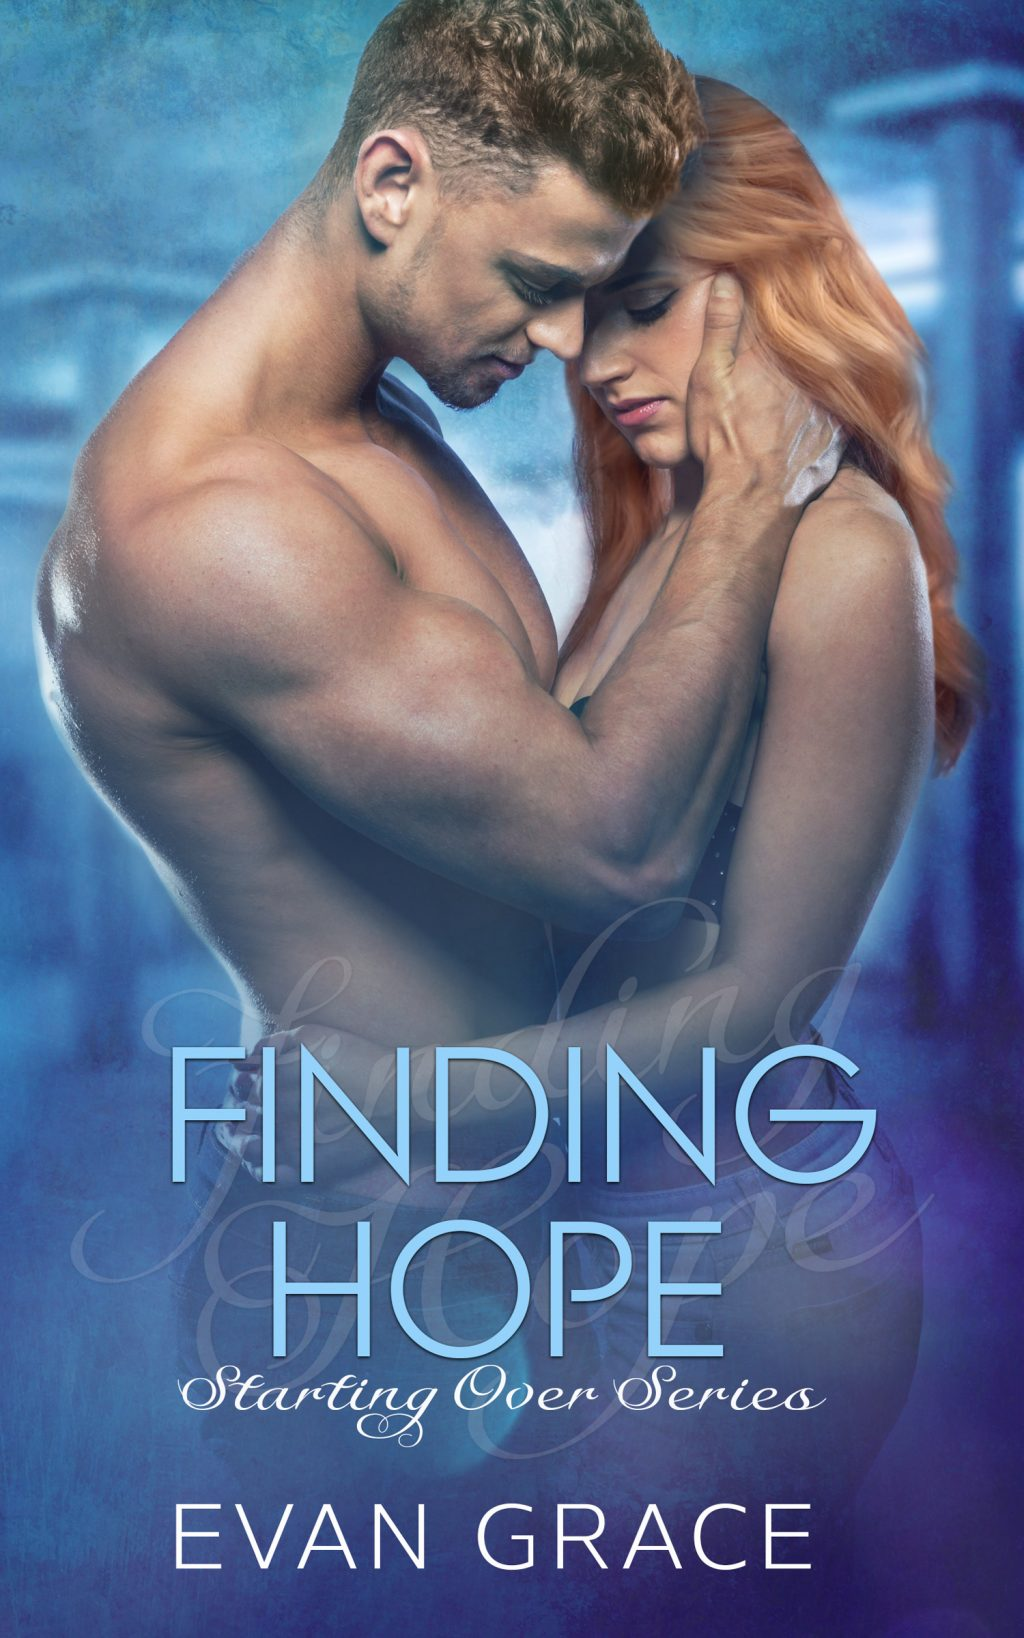 Finding Hope (Starting Over #5) by Evan Grace